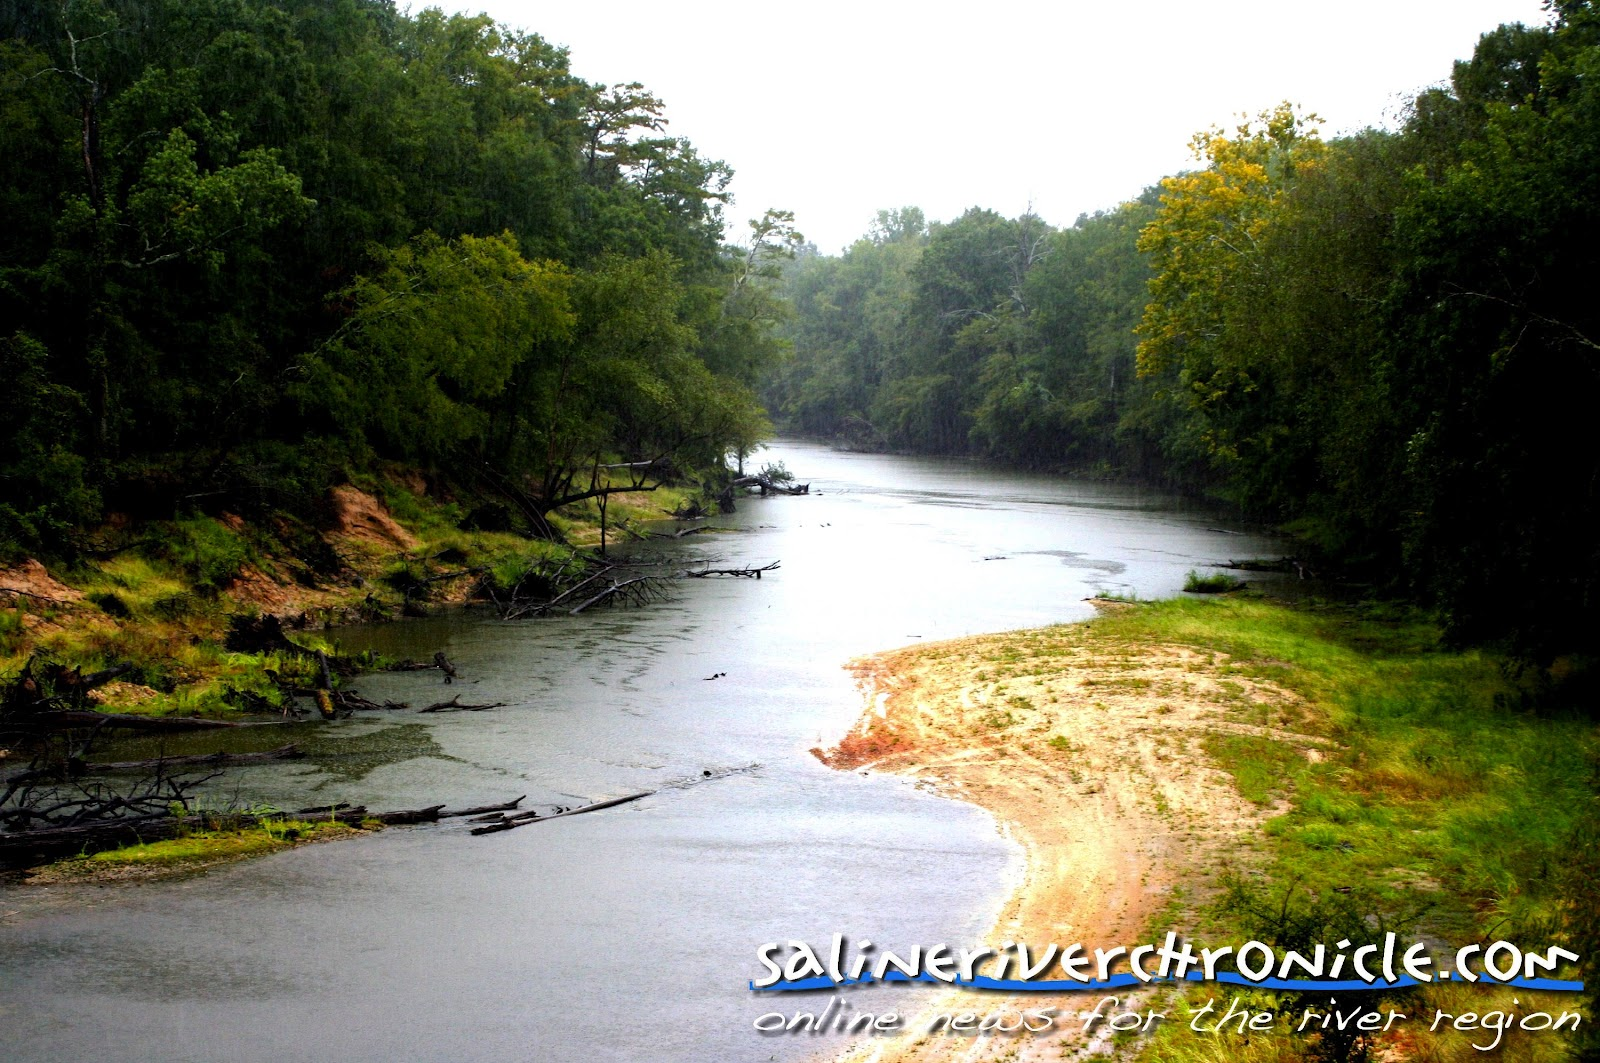 Saline River Chronicle News: More Rain Expected with Now Tropical